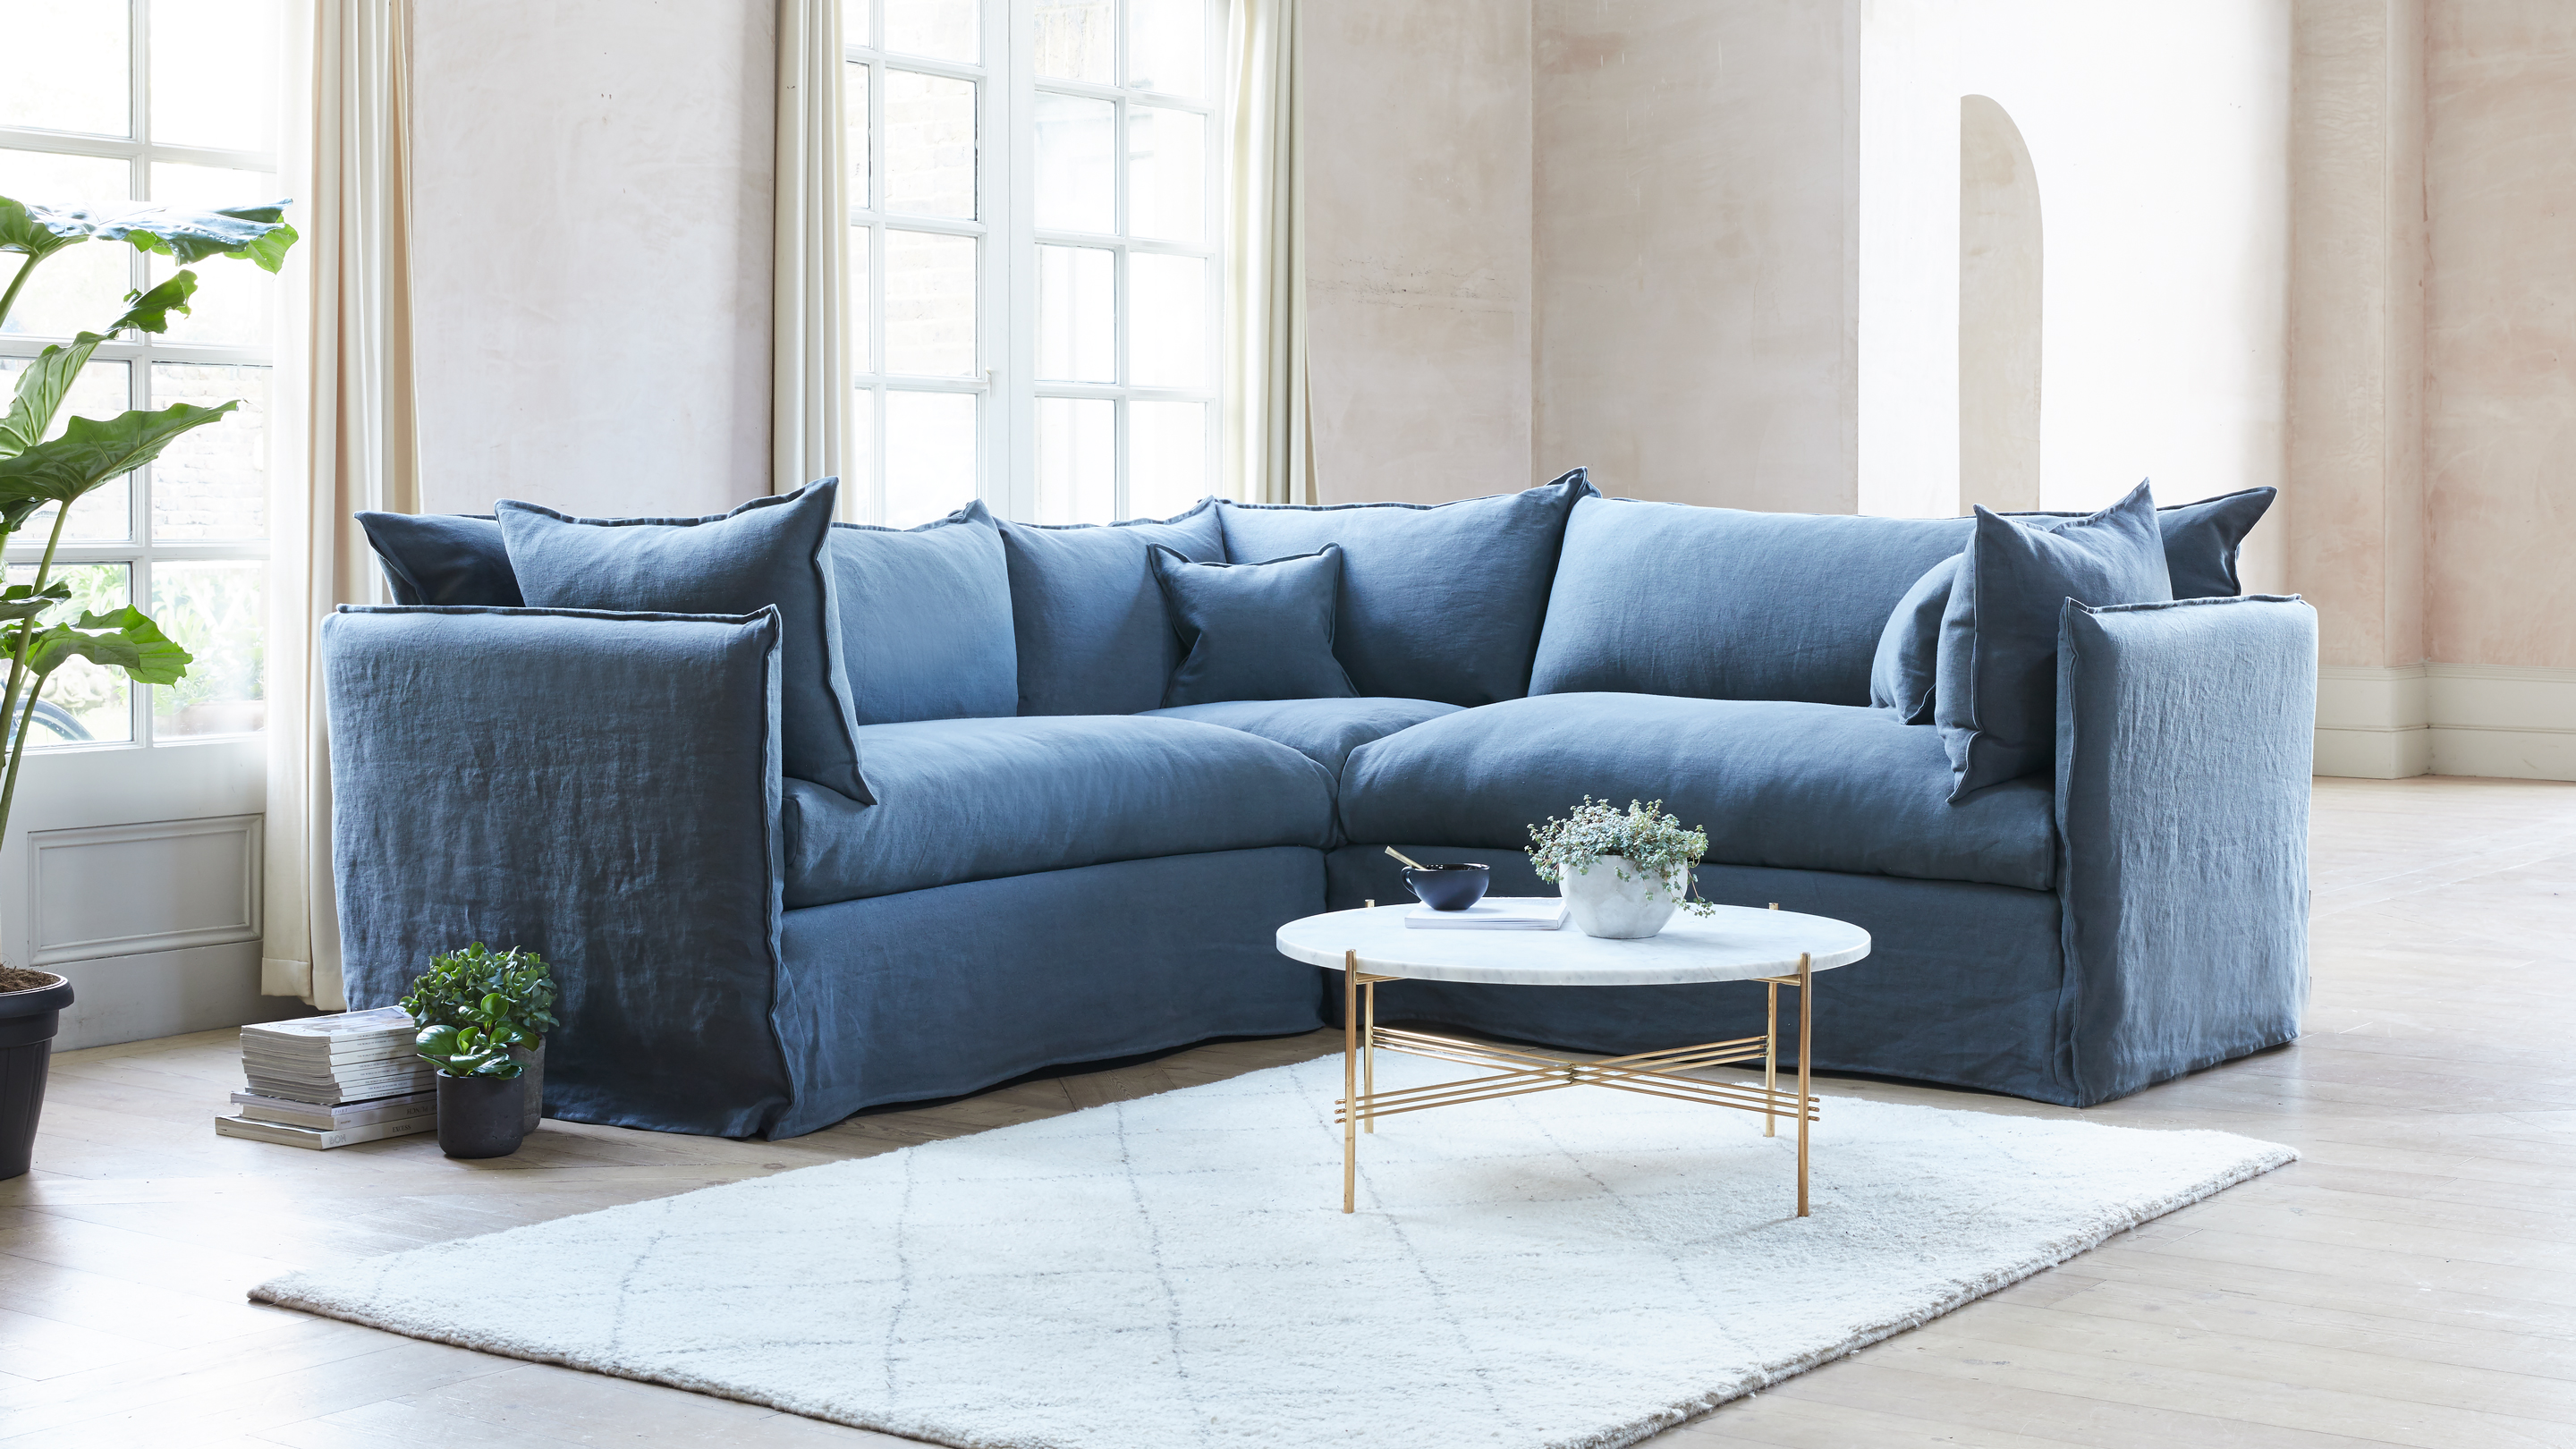 Interior Trends: Linen is the perfect fabric for Spring